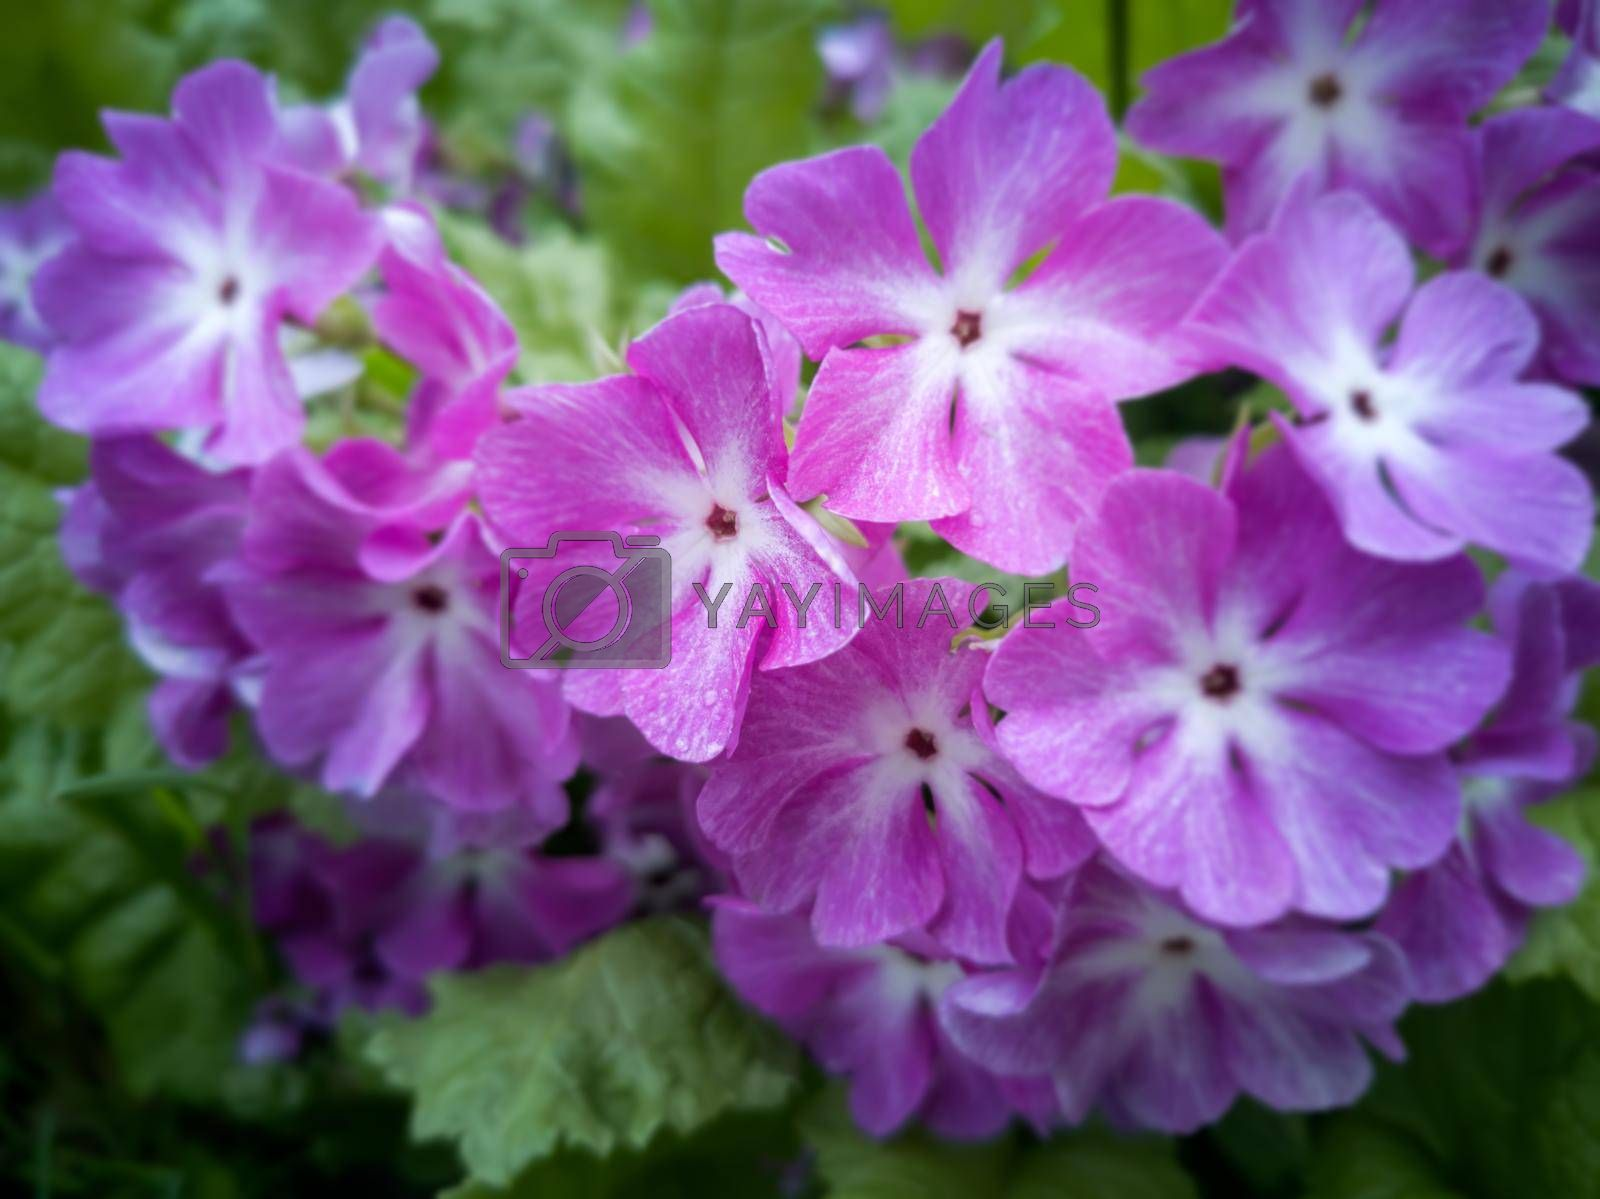 The pink flowers of a primrose shined with the sun, are photographed by a close up